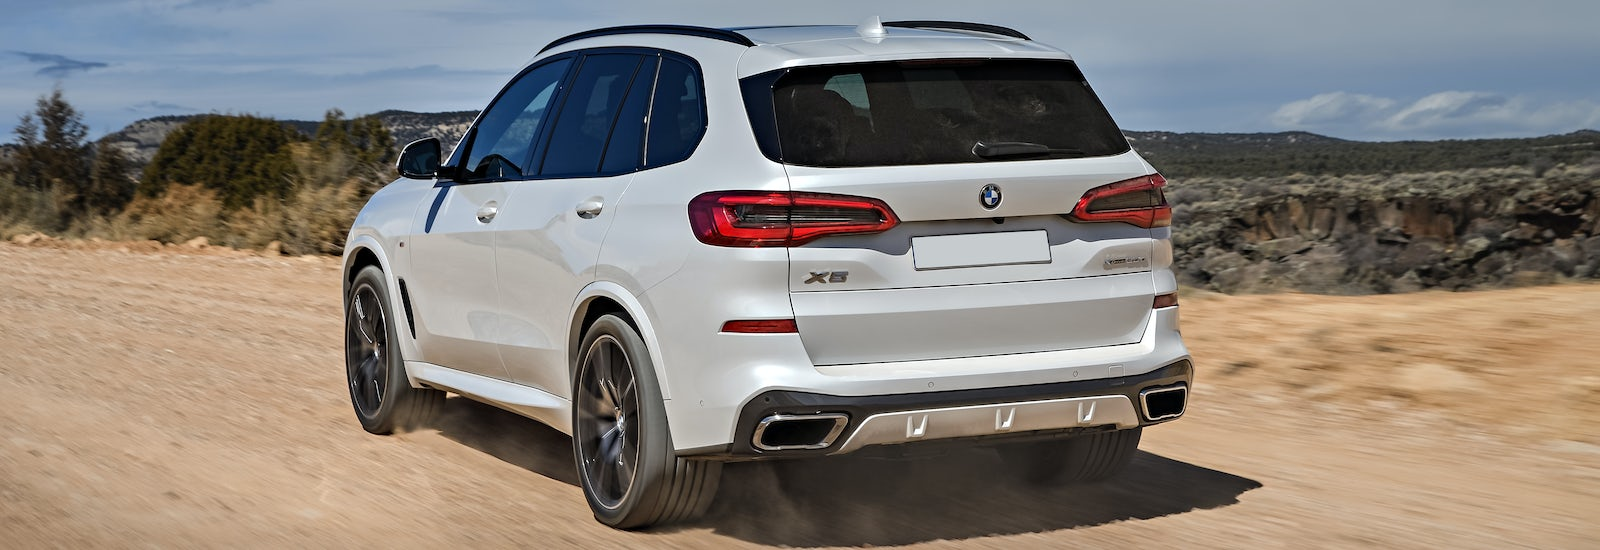 2019 Bmw X5 White Driving Rear Dirt Road